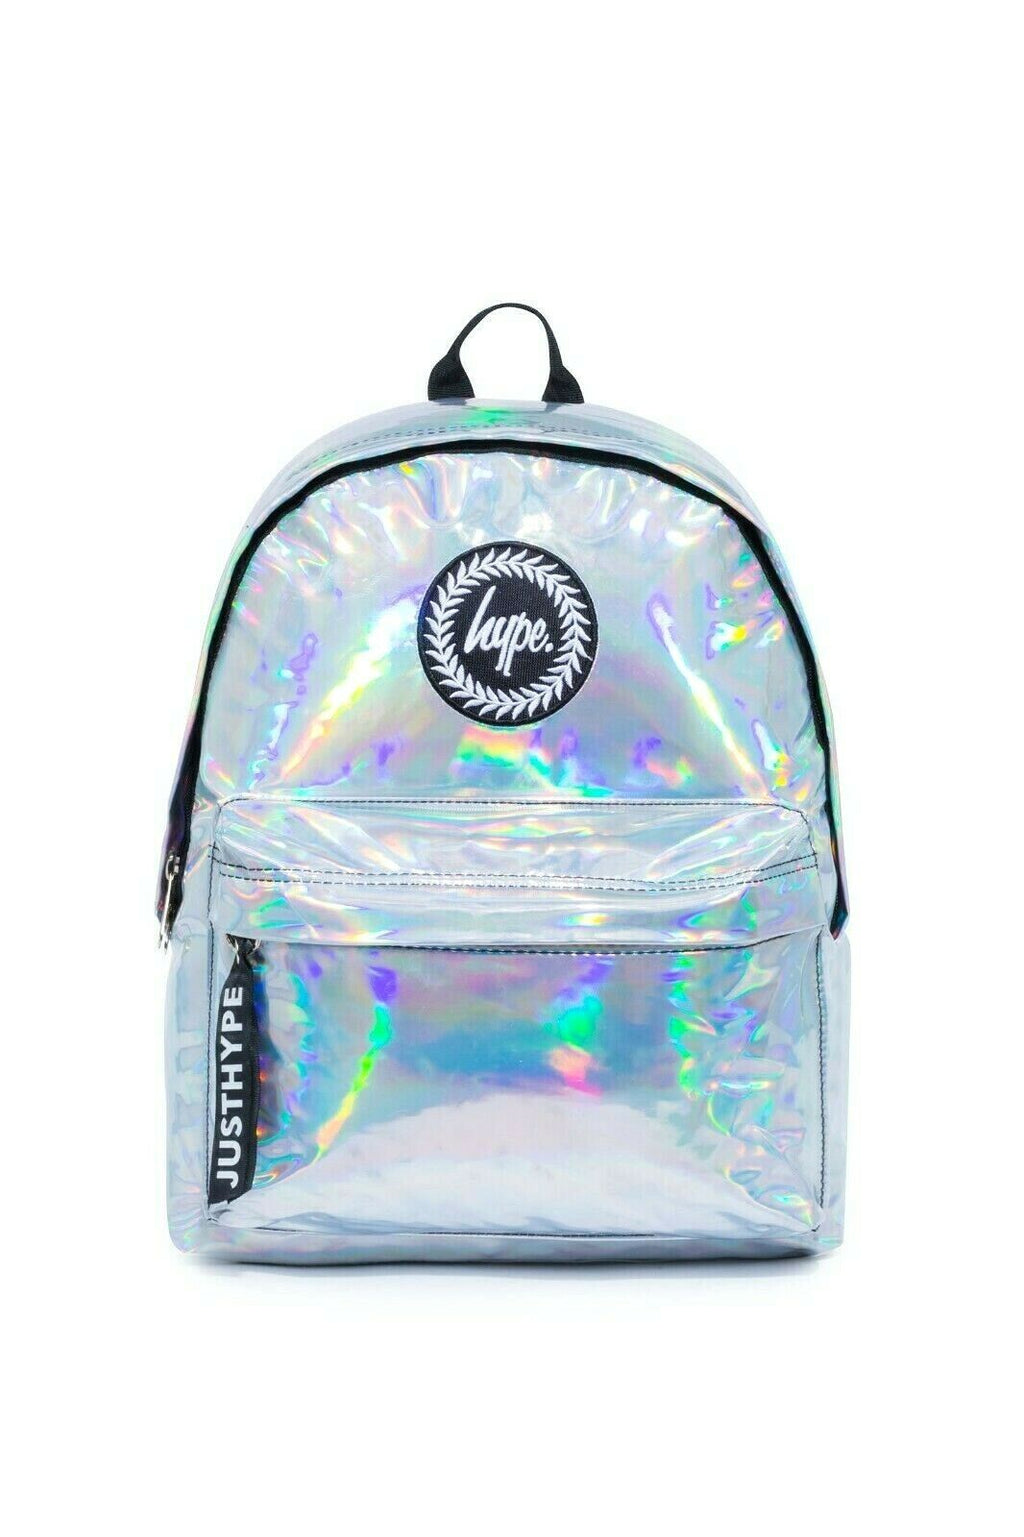 HYPE HOLO MINI BACKPACK RUCKSACK BAG - SILVER